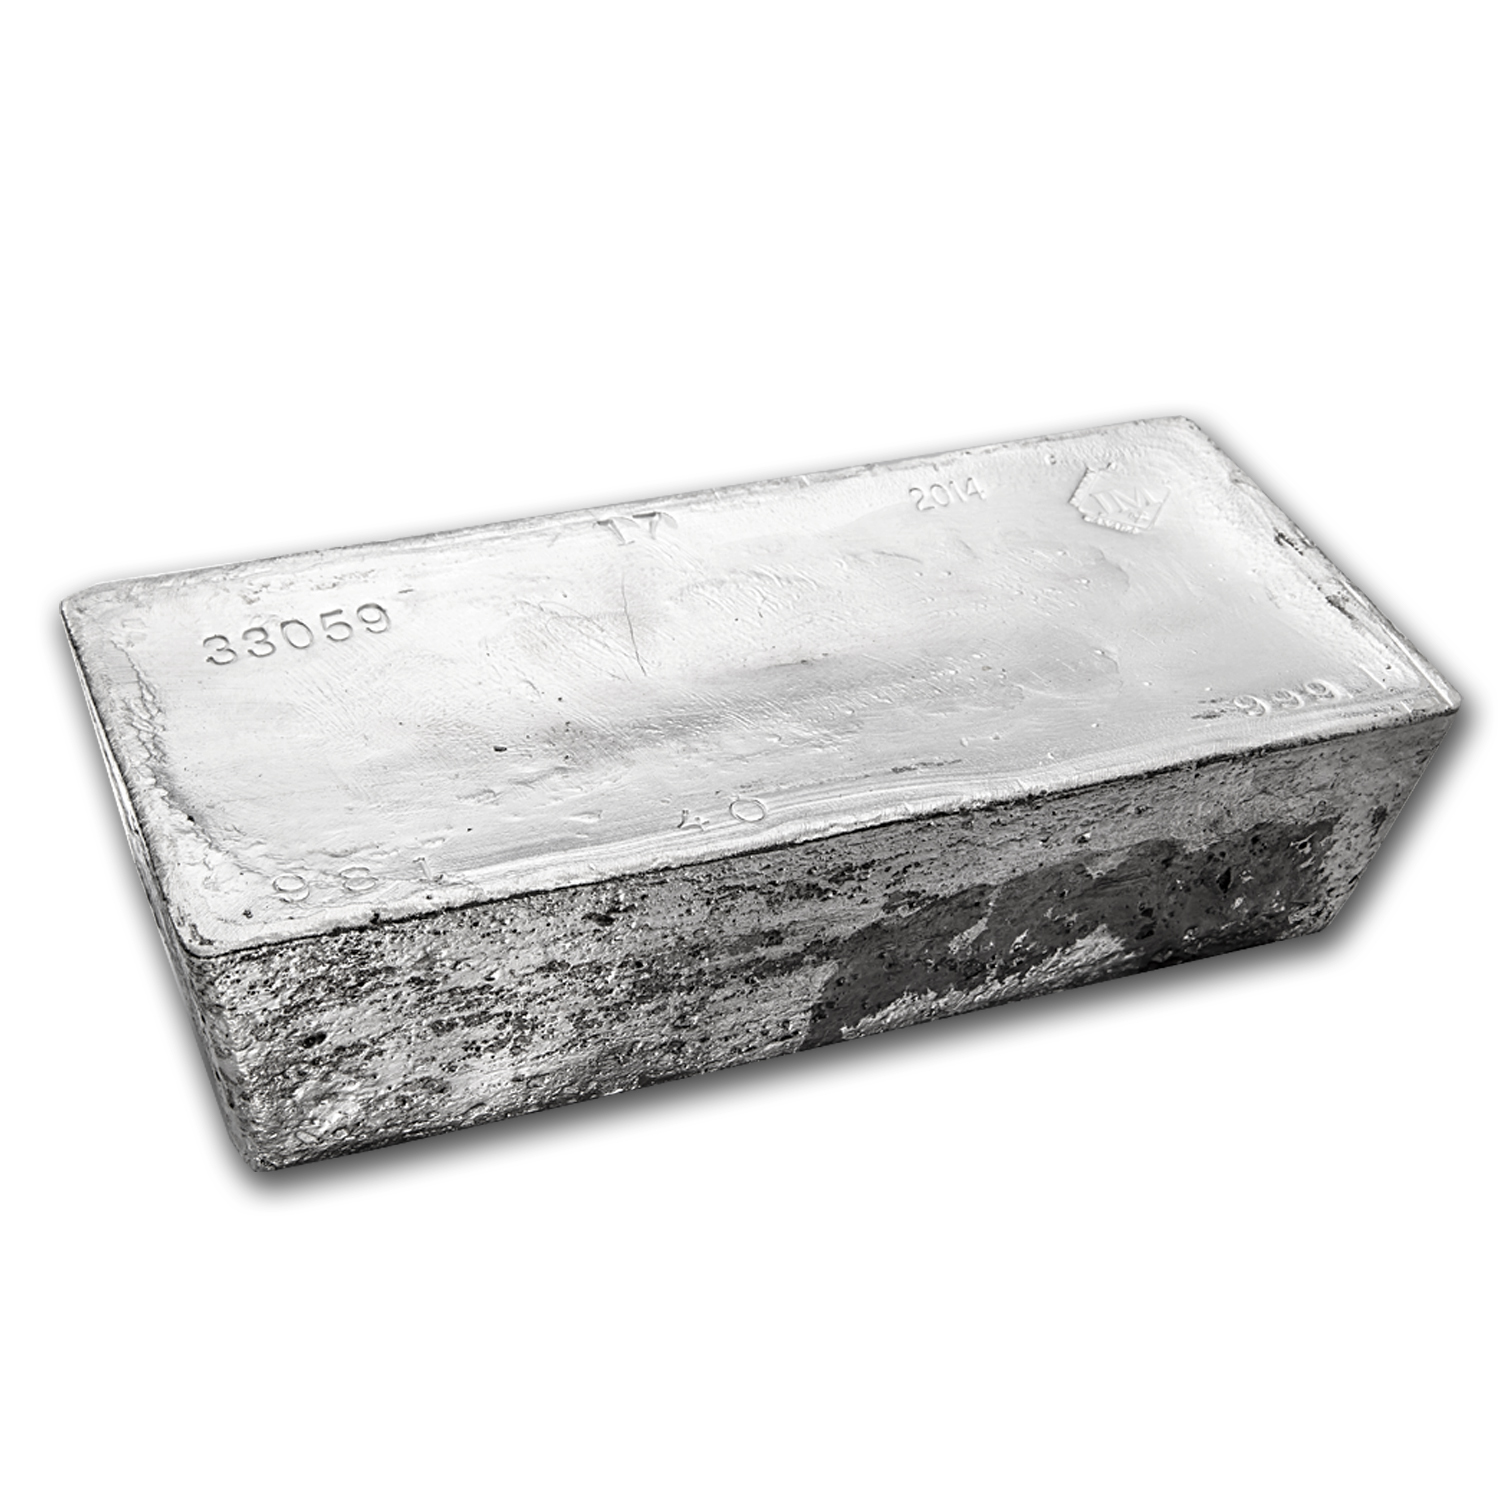 985.80 oz Silver Bar - Johnson Matthey